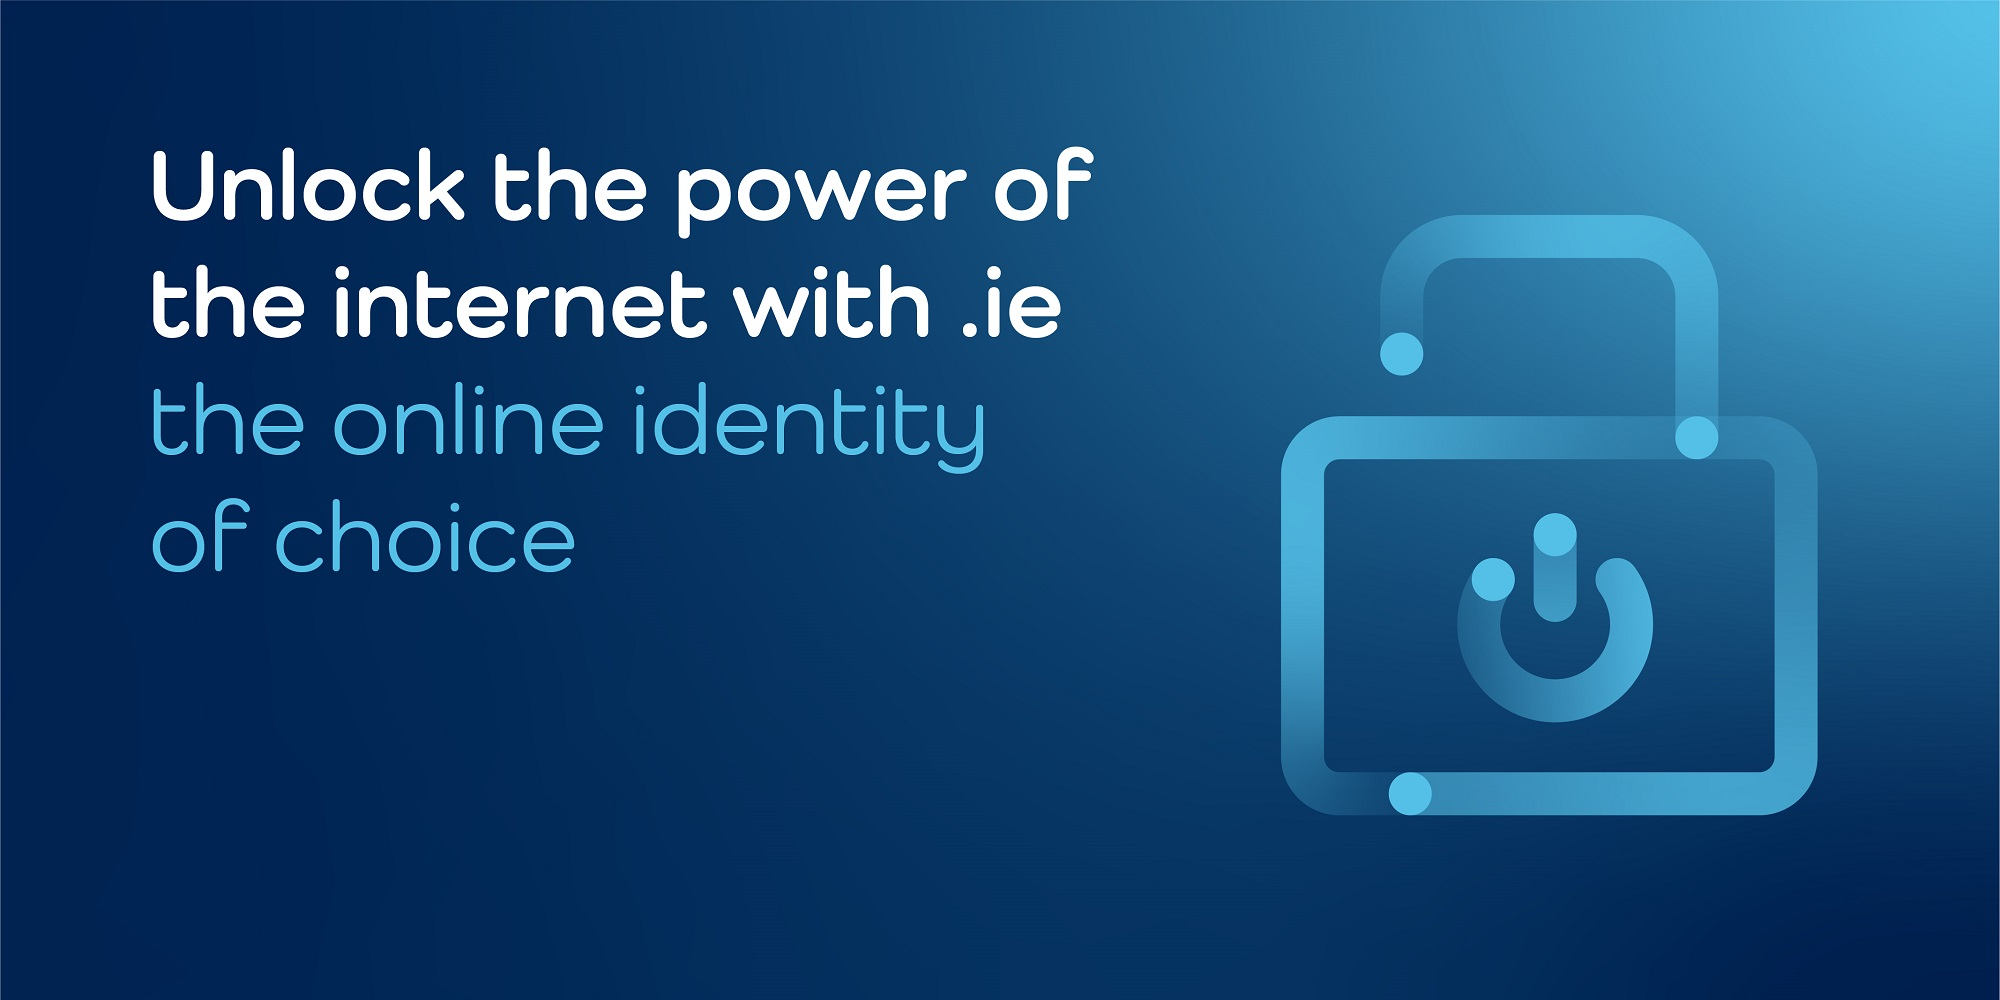 Unlock the power of the internet with .ie - the online identity of choice